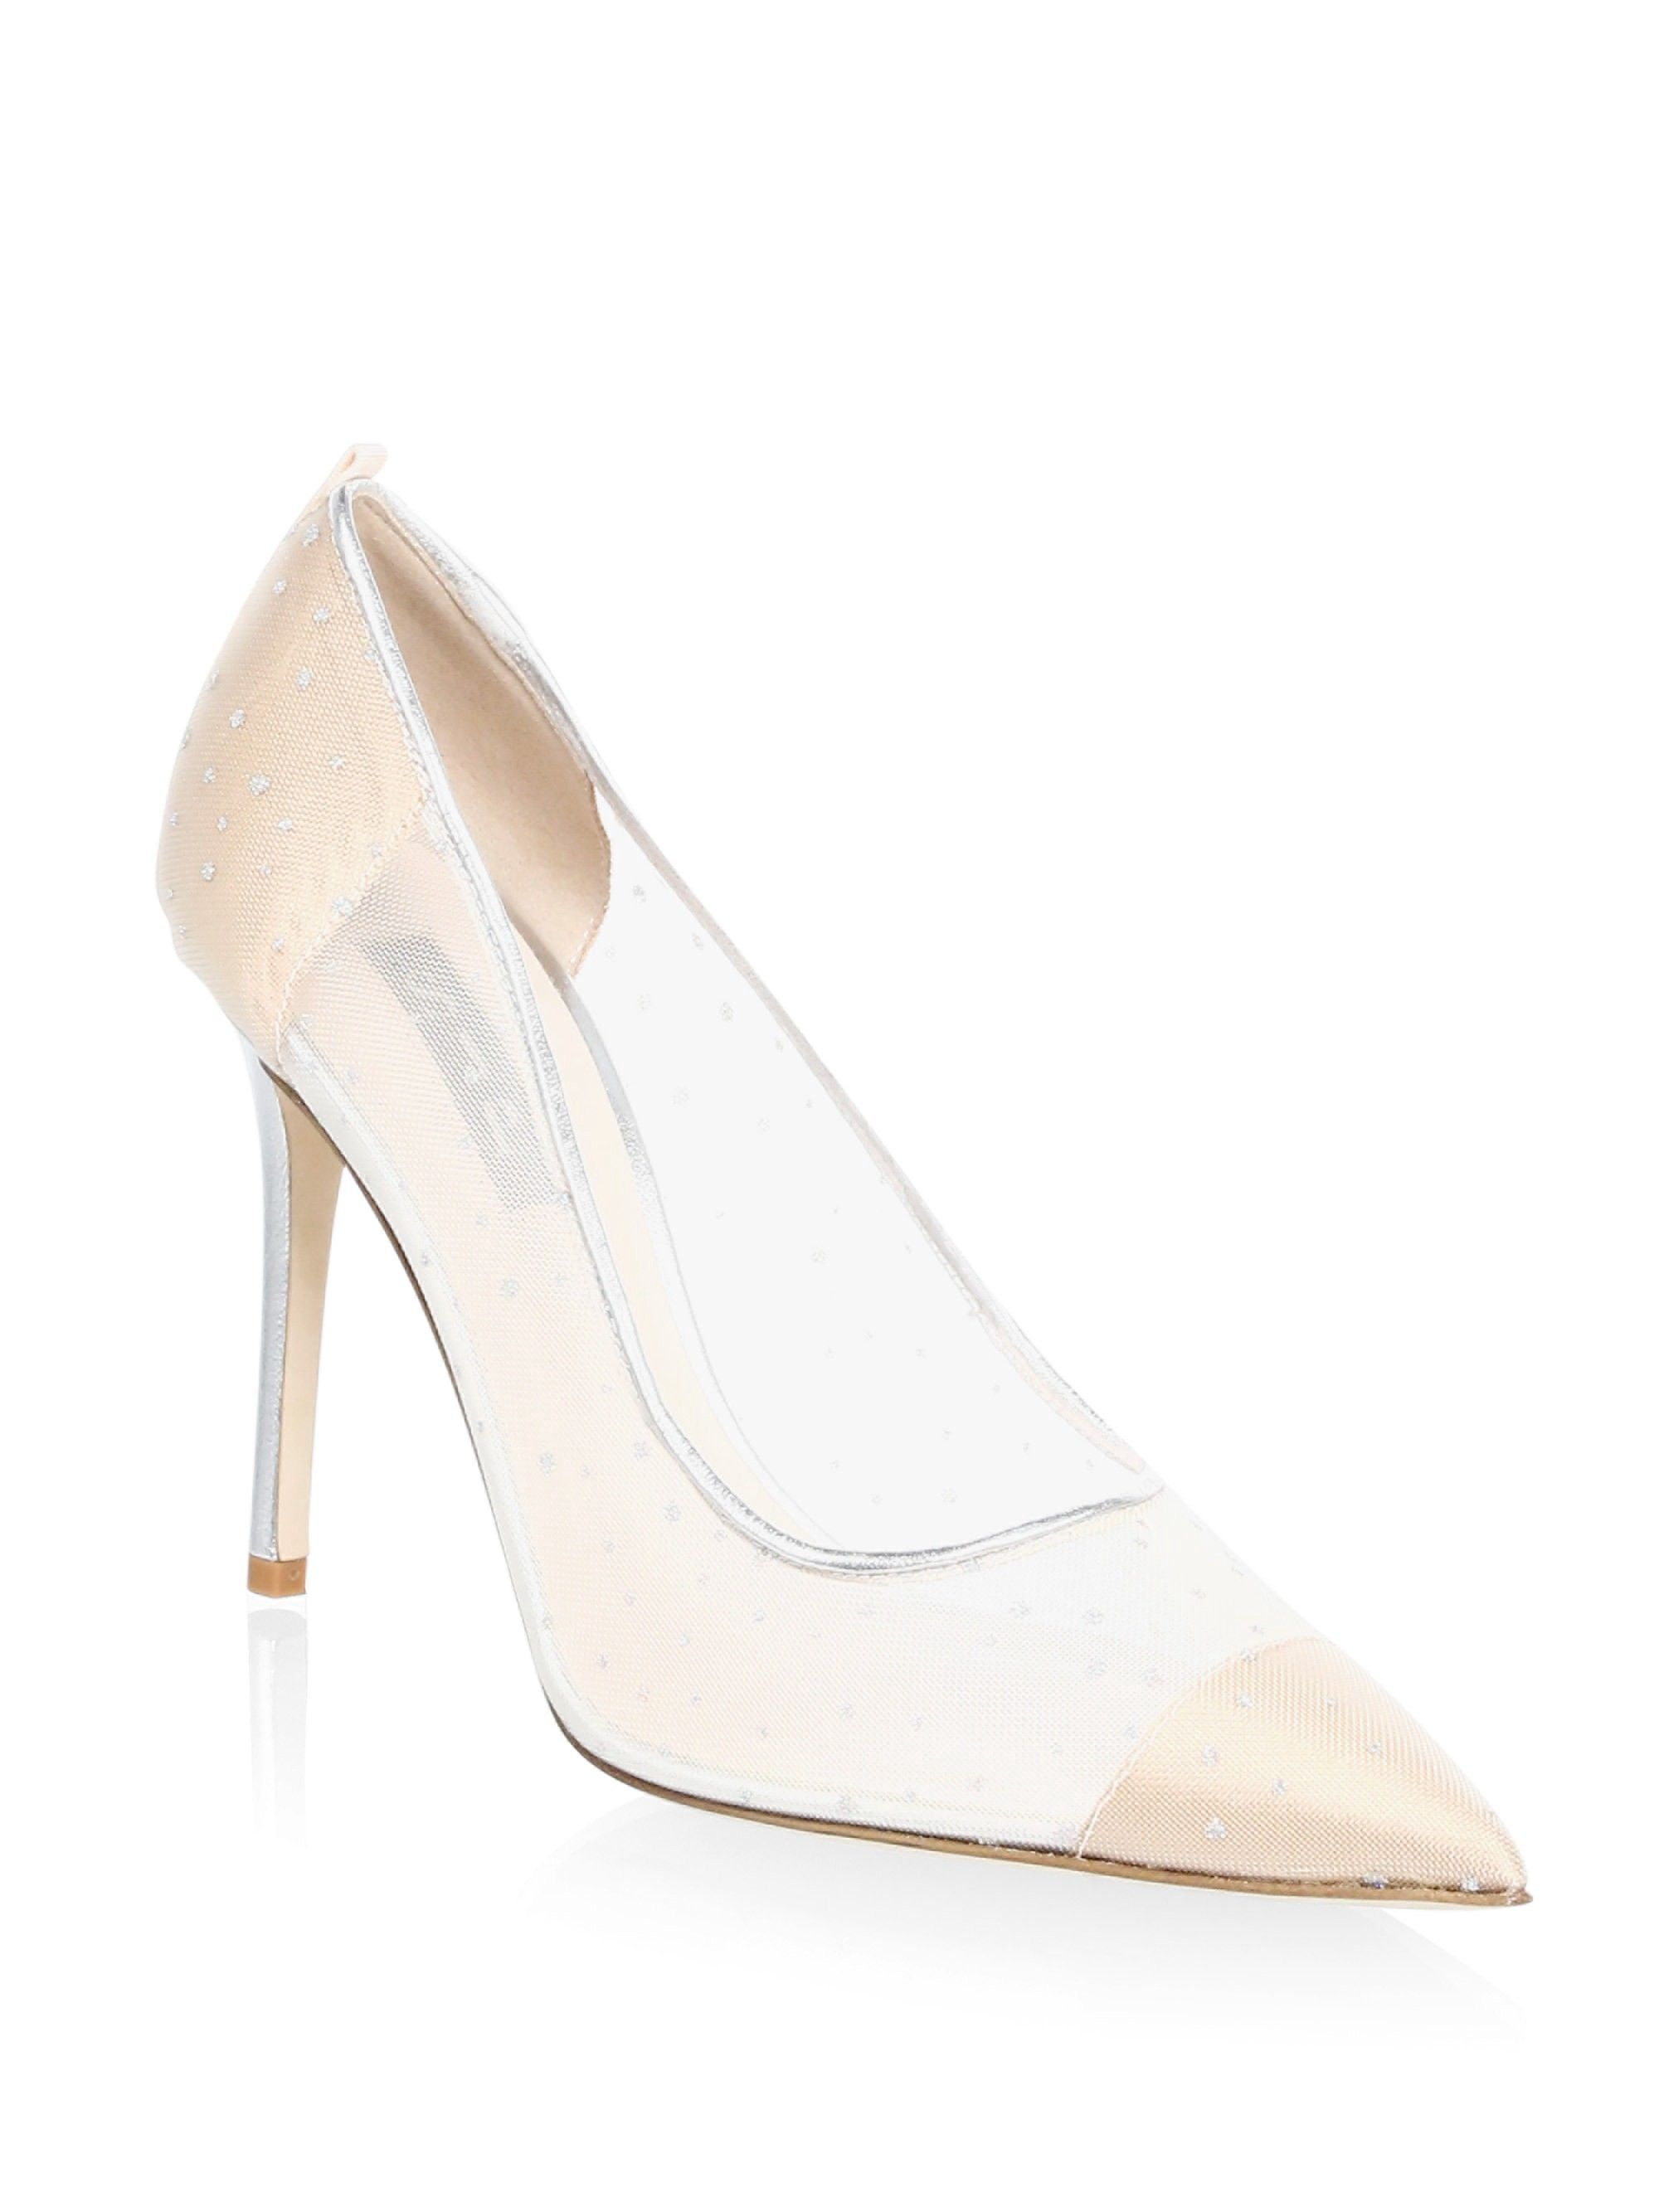 5e32faf7f81 Sjp By Sarah Jessica Parker Glass Material Point Toe Leather Pumps - Silver  36.5 (6.5)